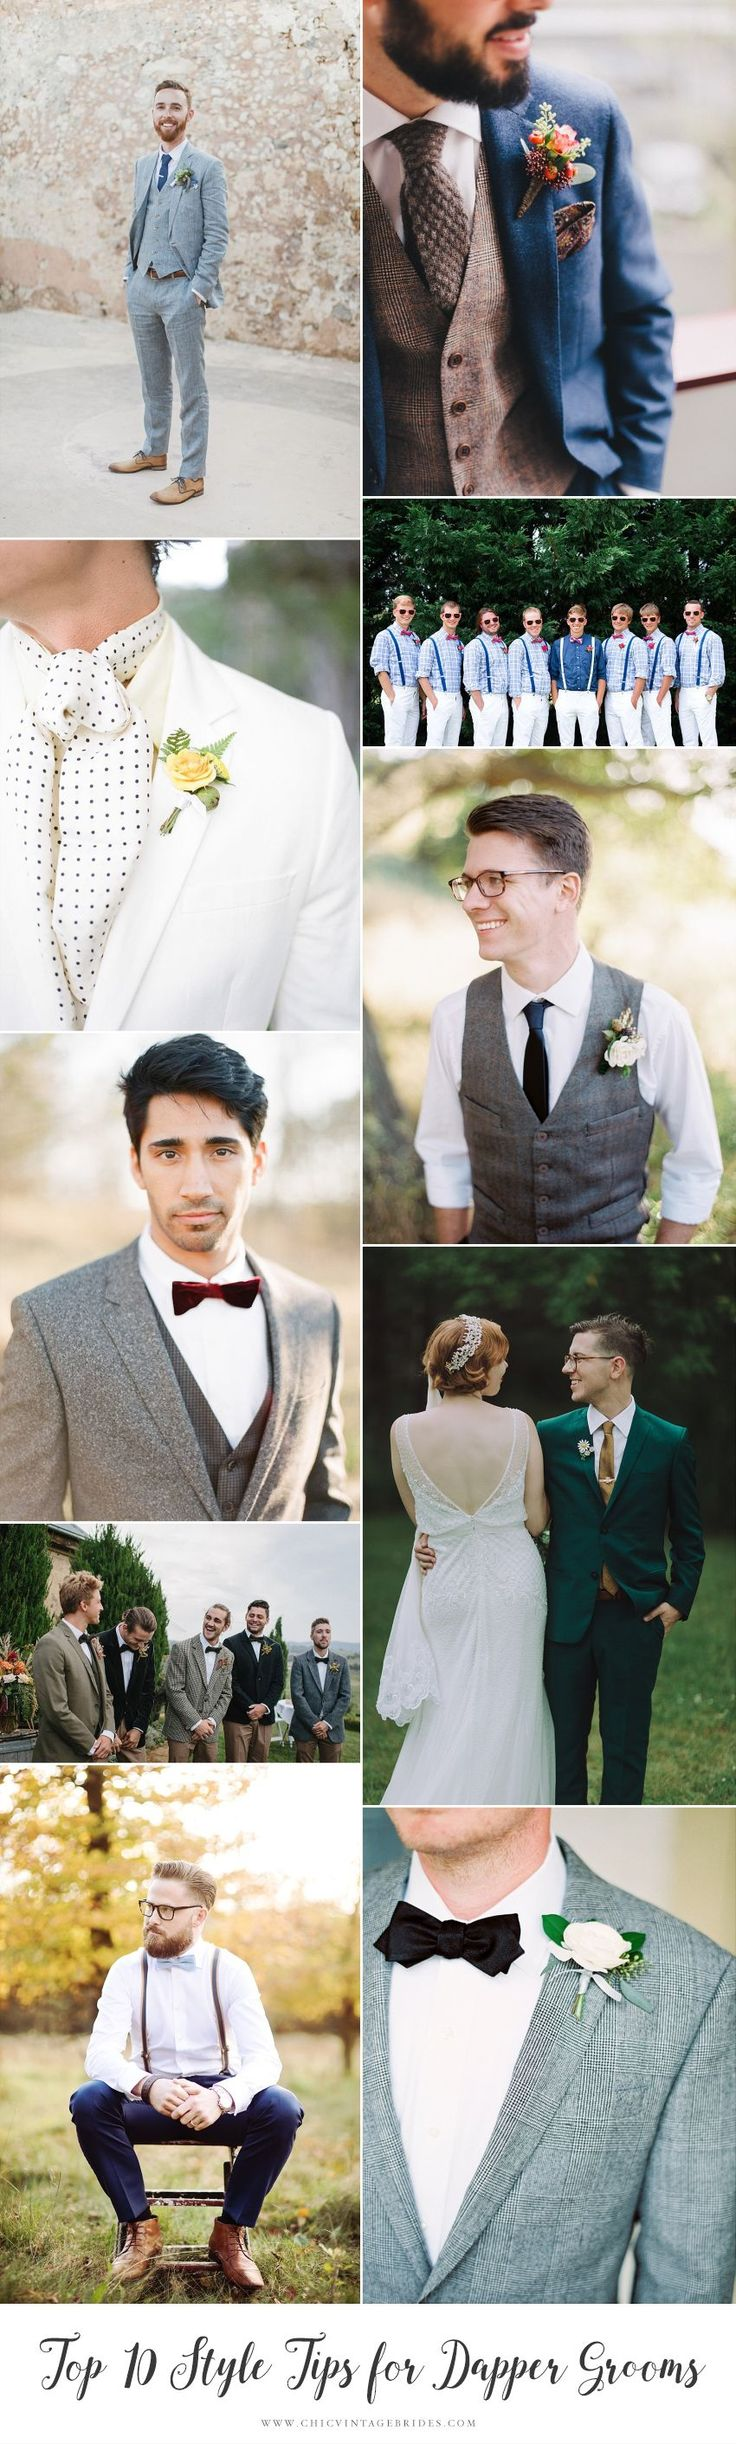 Top 10 Style Tips For Dapper Grooms